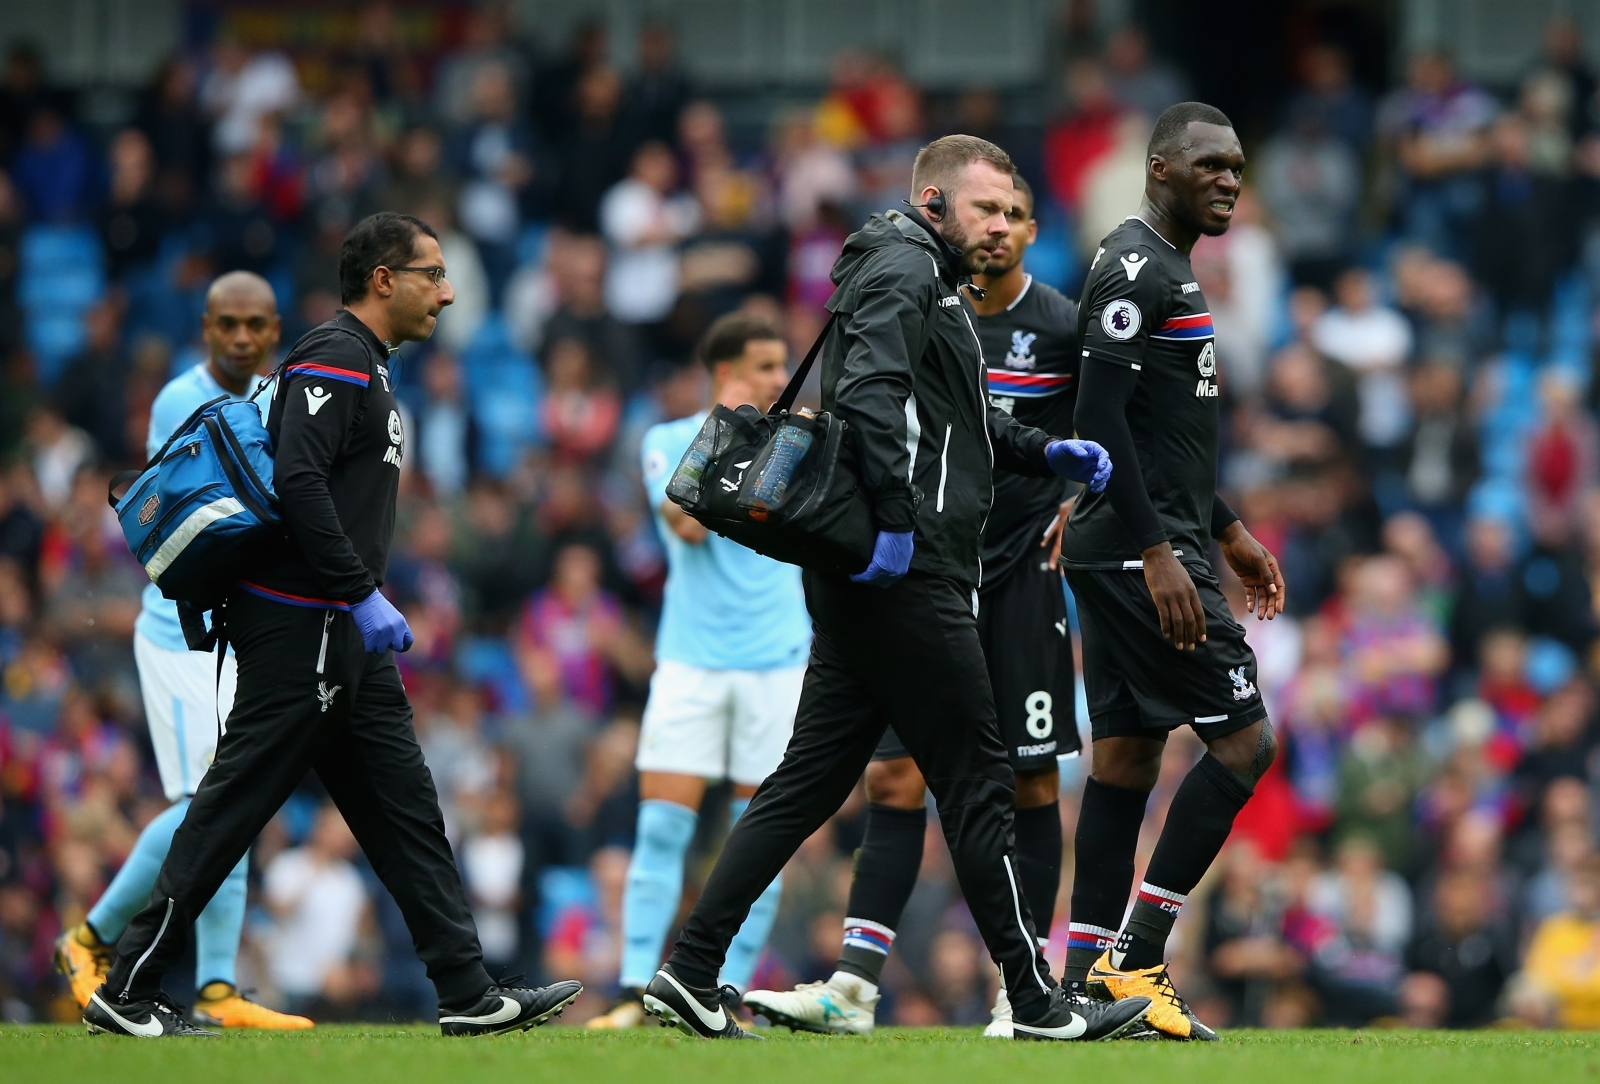 Manchester City beat visiting Crystal Palace at the Etihad Stadium